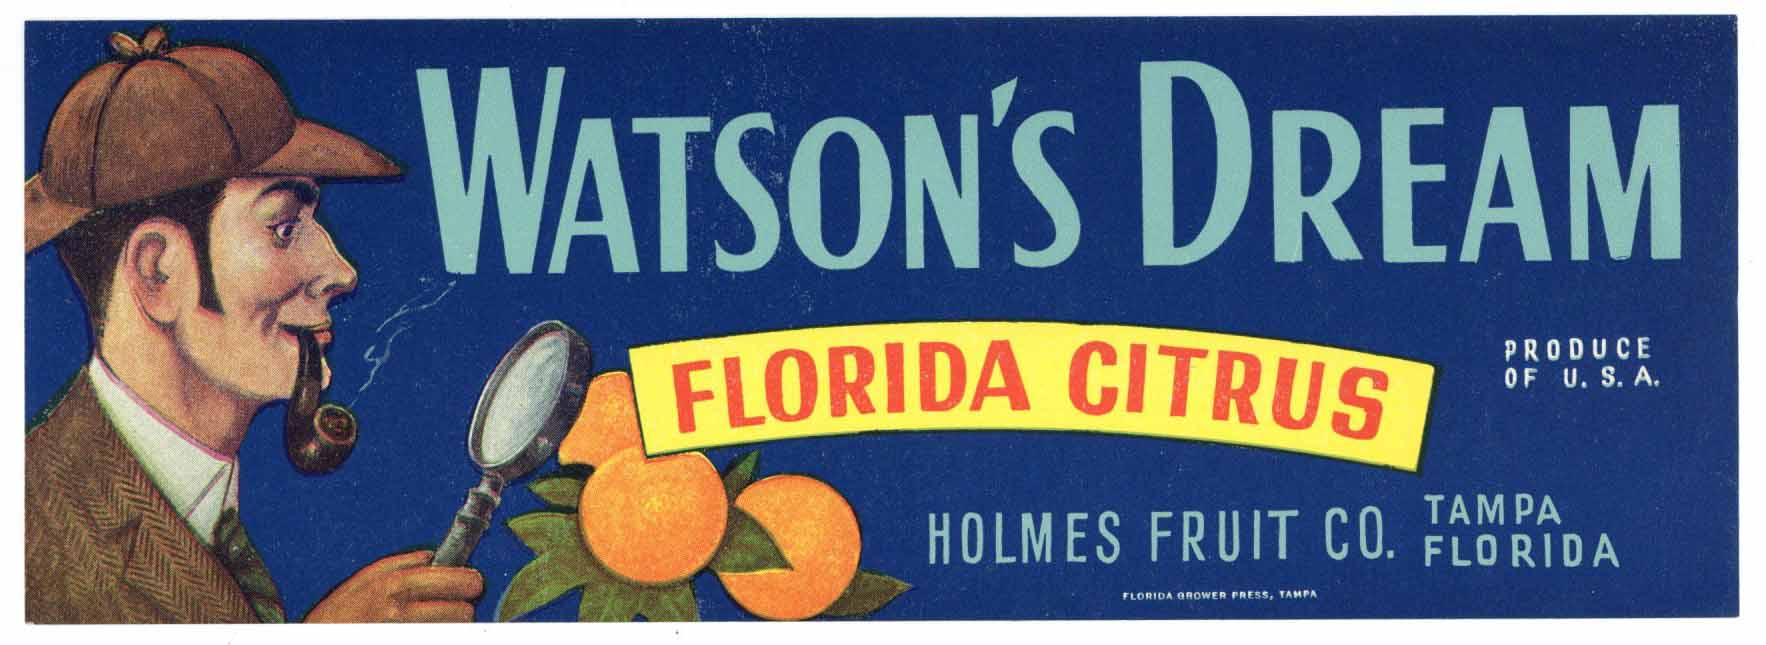 Watson's Dream Brand Vintage Tampa Florida Citrus Crate Label